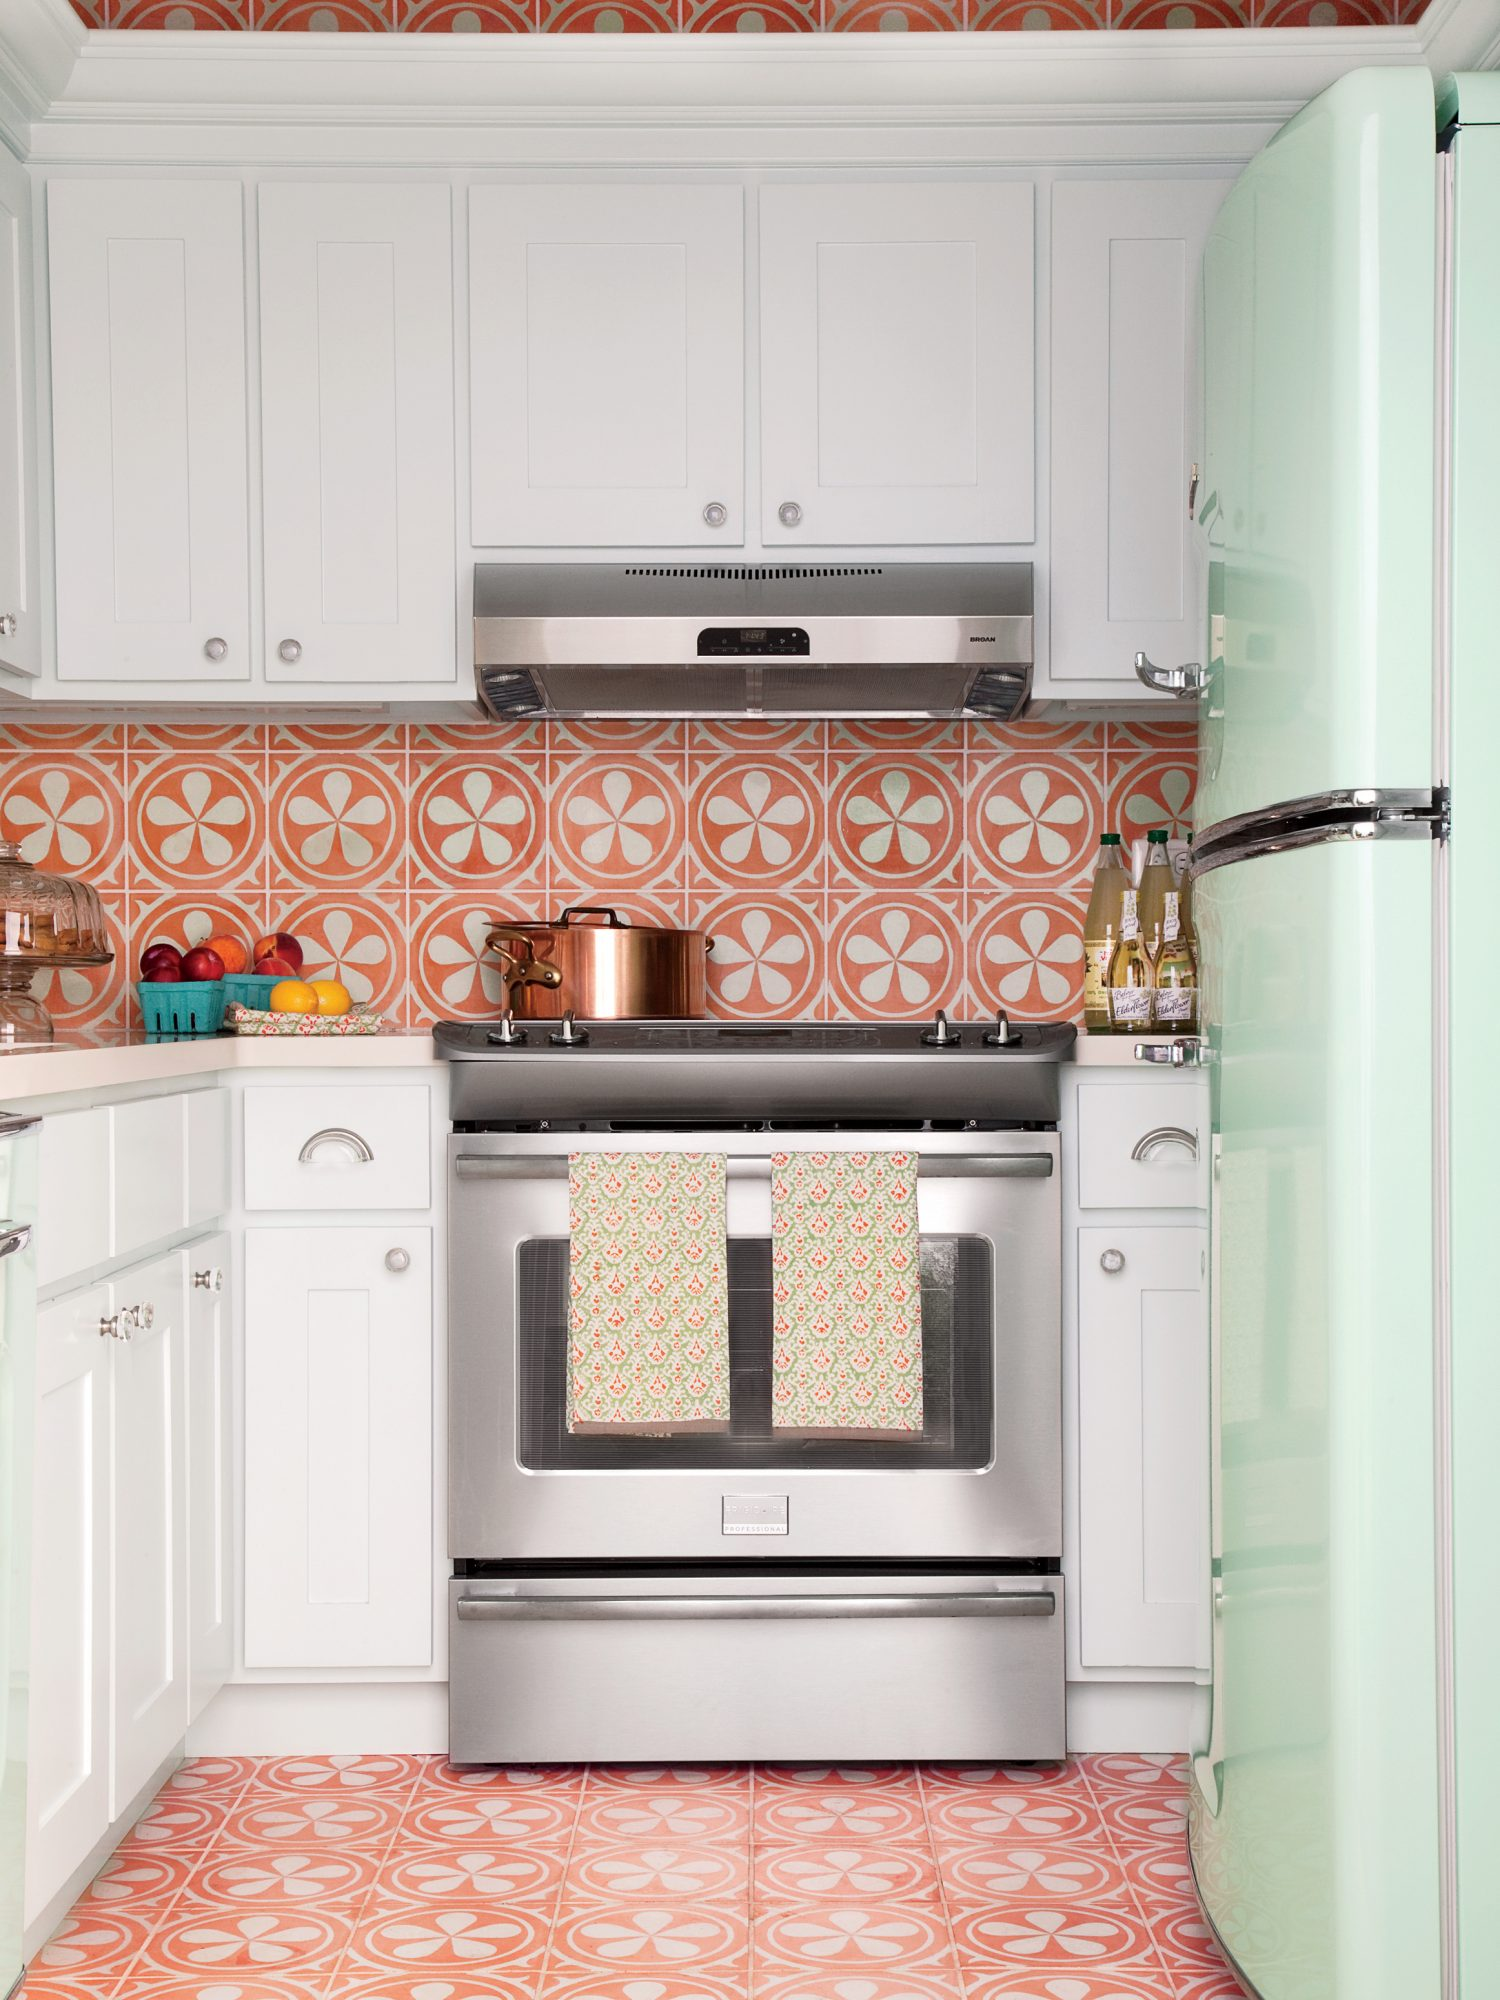 Bring the backsplash to the ceiling